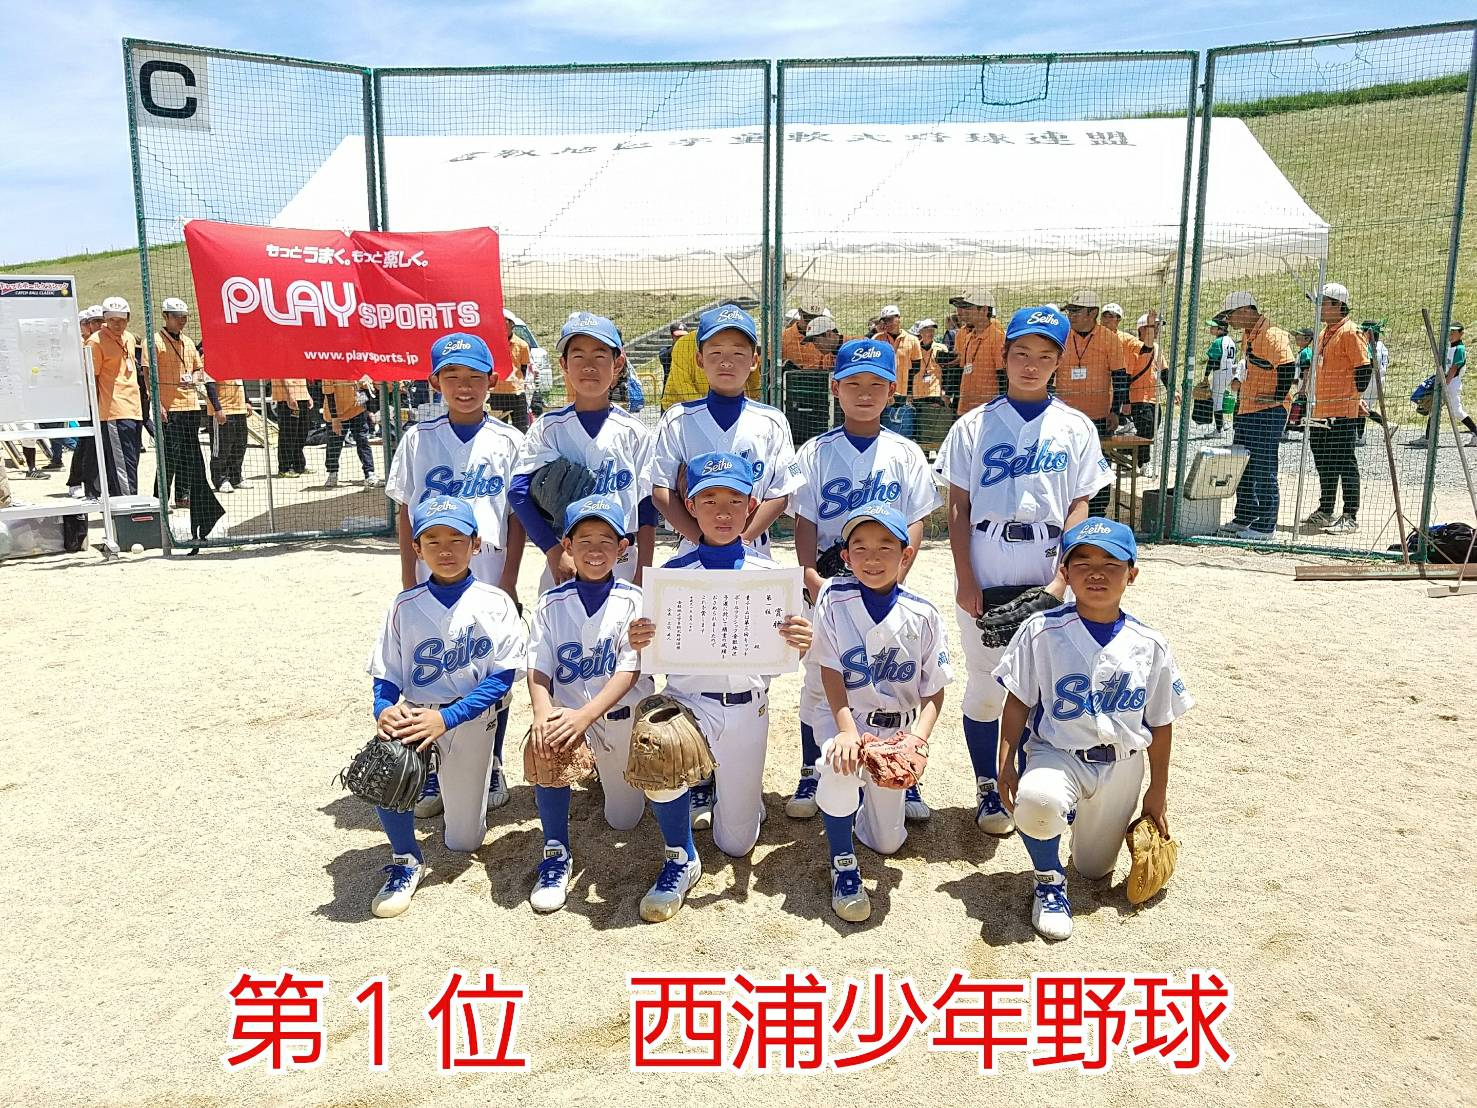 http://www.playsports.jp/news/images/7988747579074.jpg